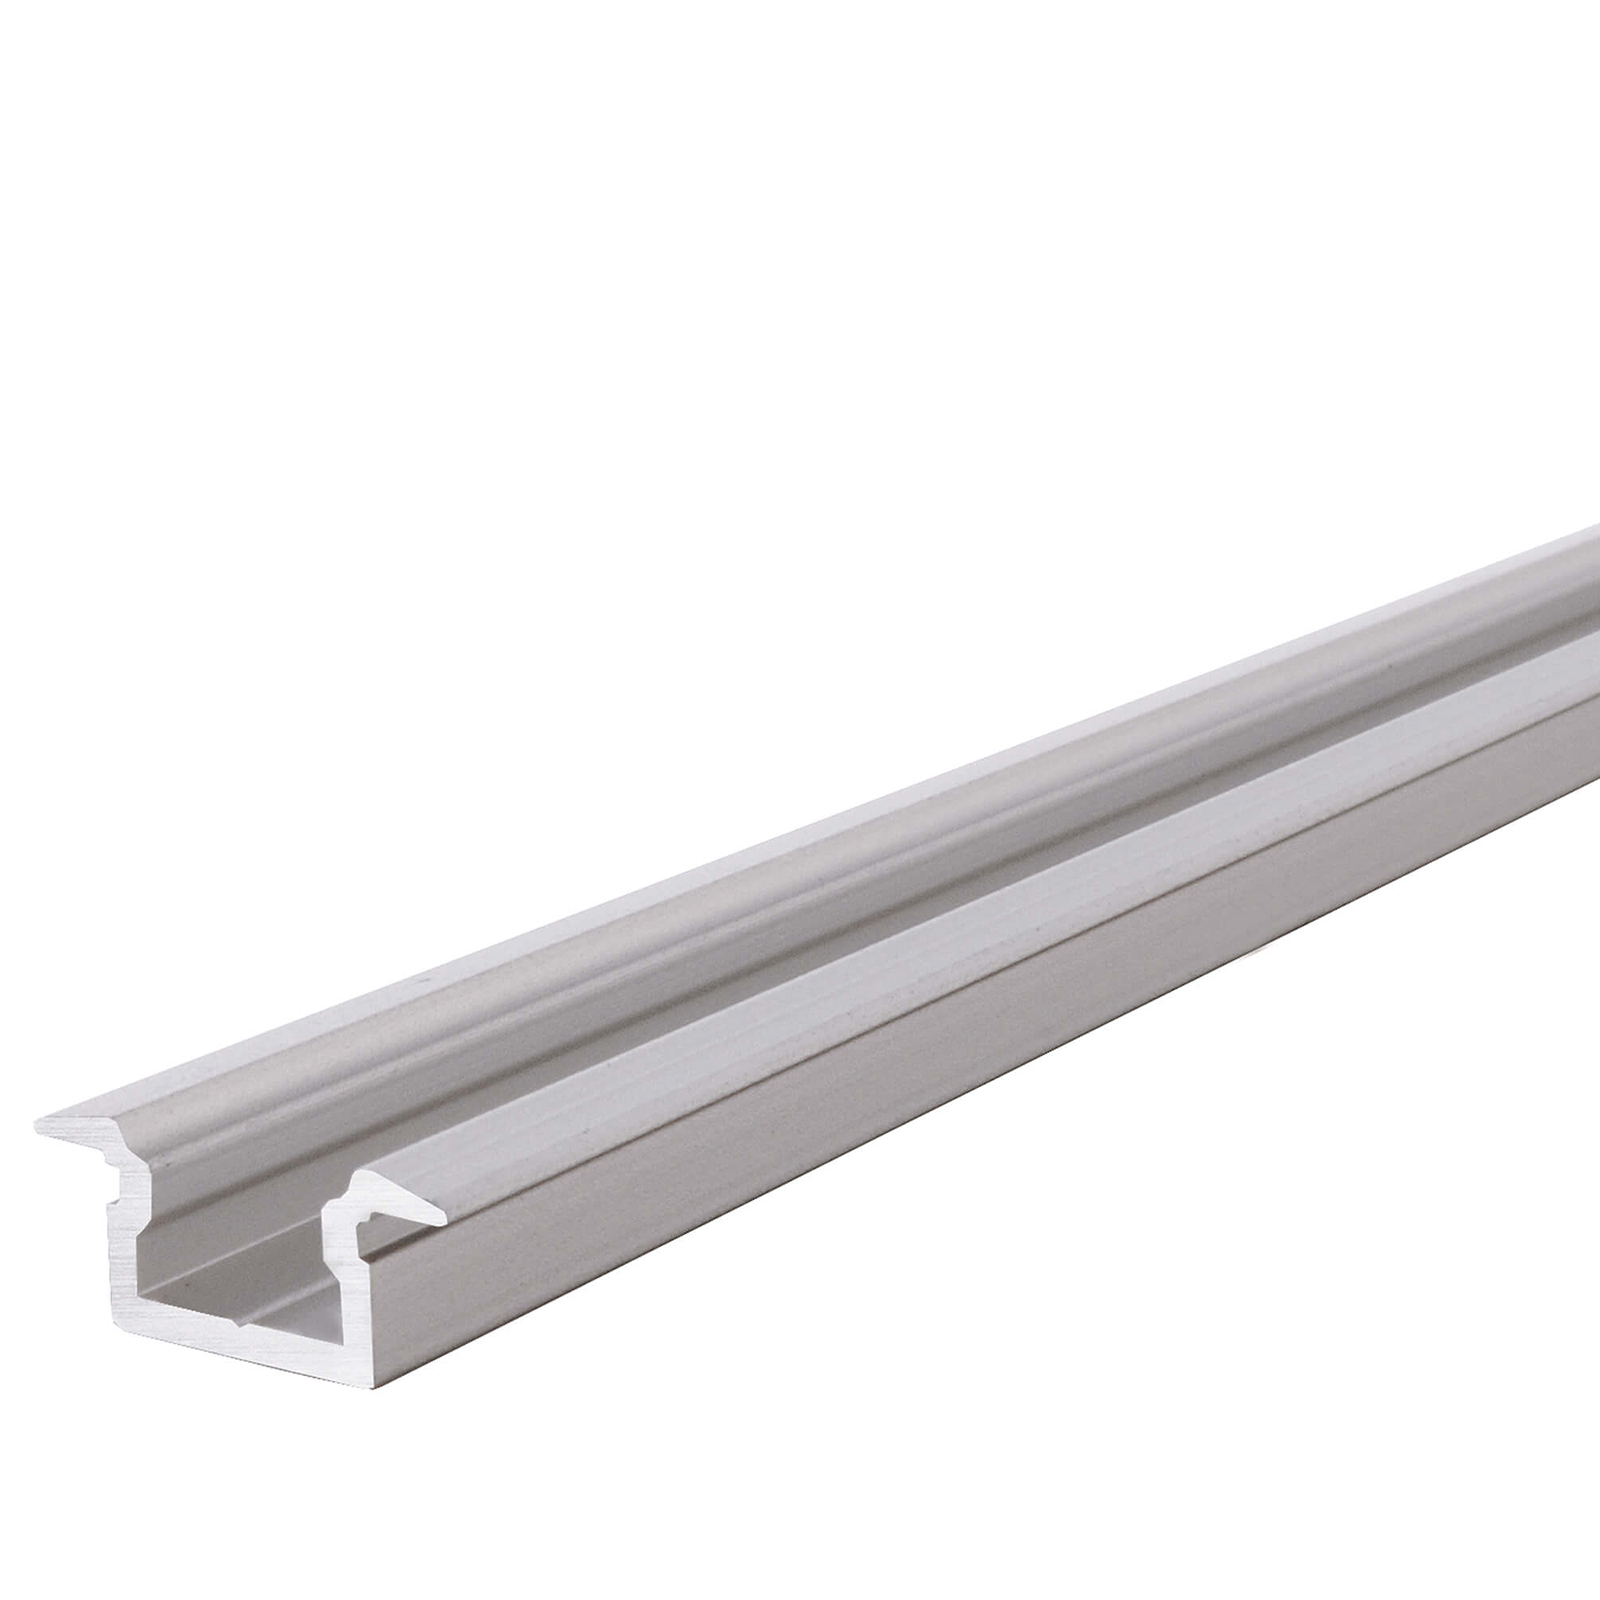 LED profile aluminium T-FLAT profile profiled bar, recessed, for strips strip led lights